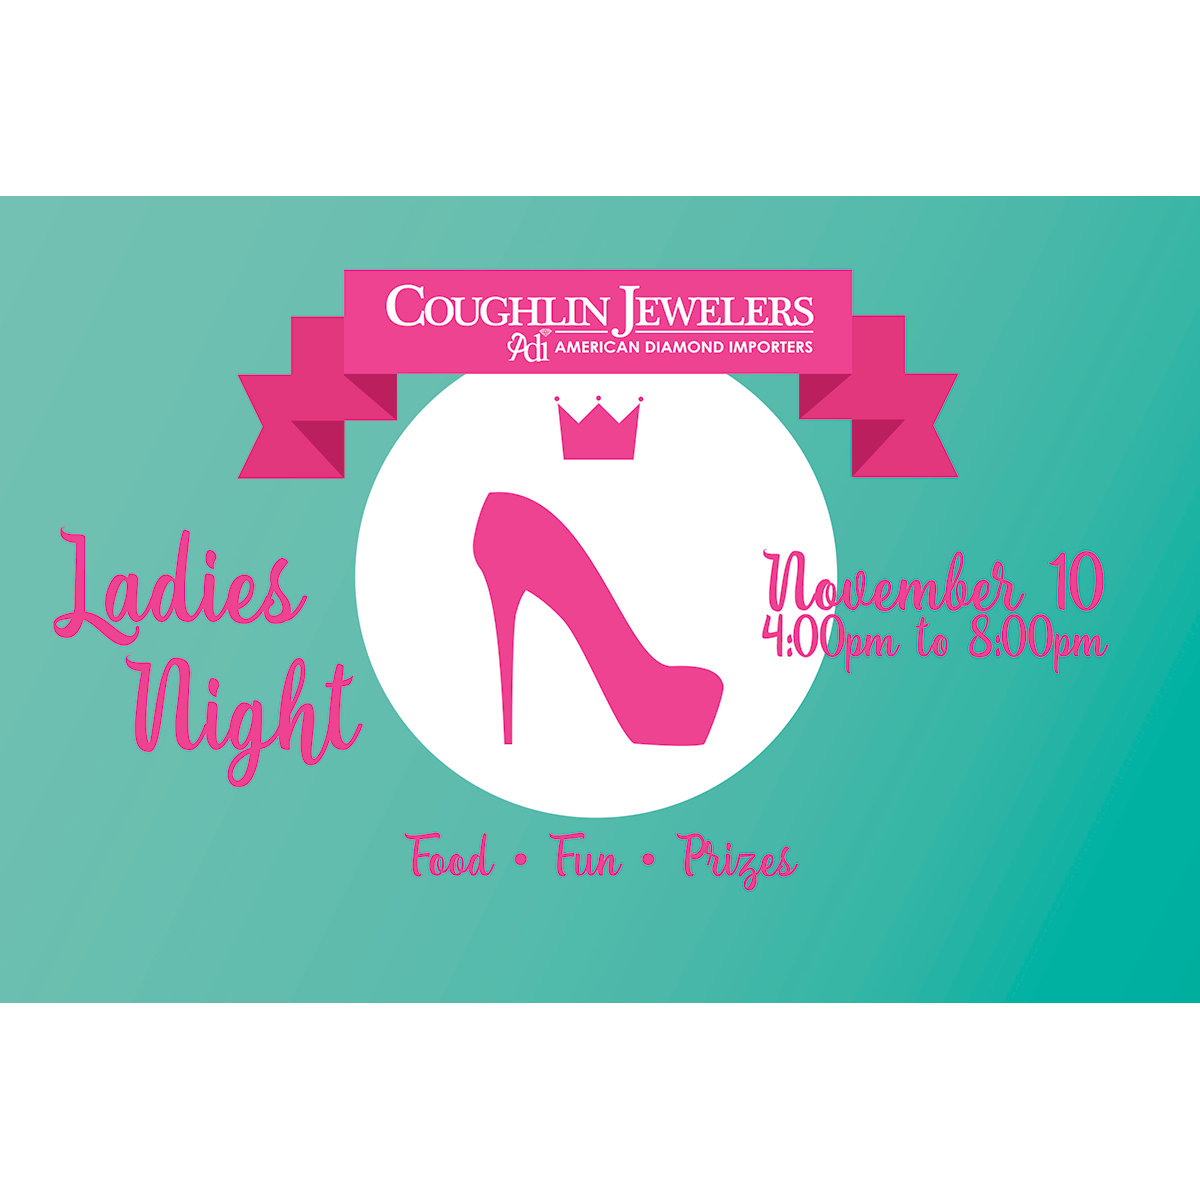 Coughlin Jewelers Ladies Night 2016 Postcard